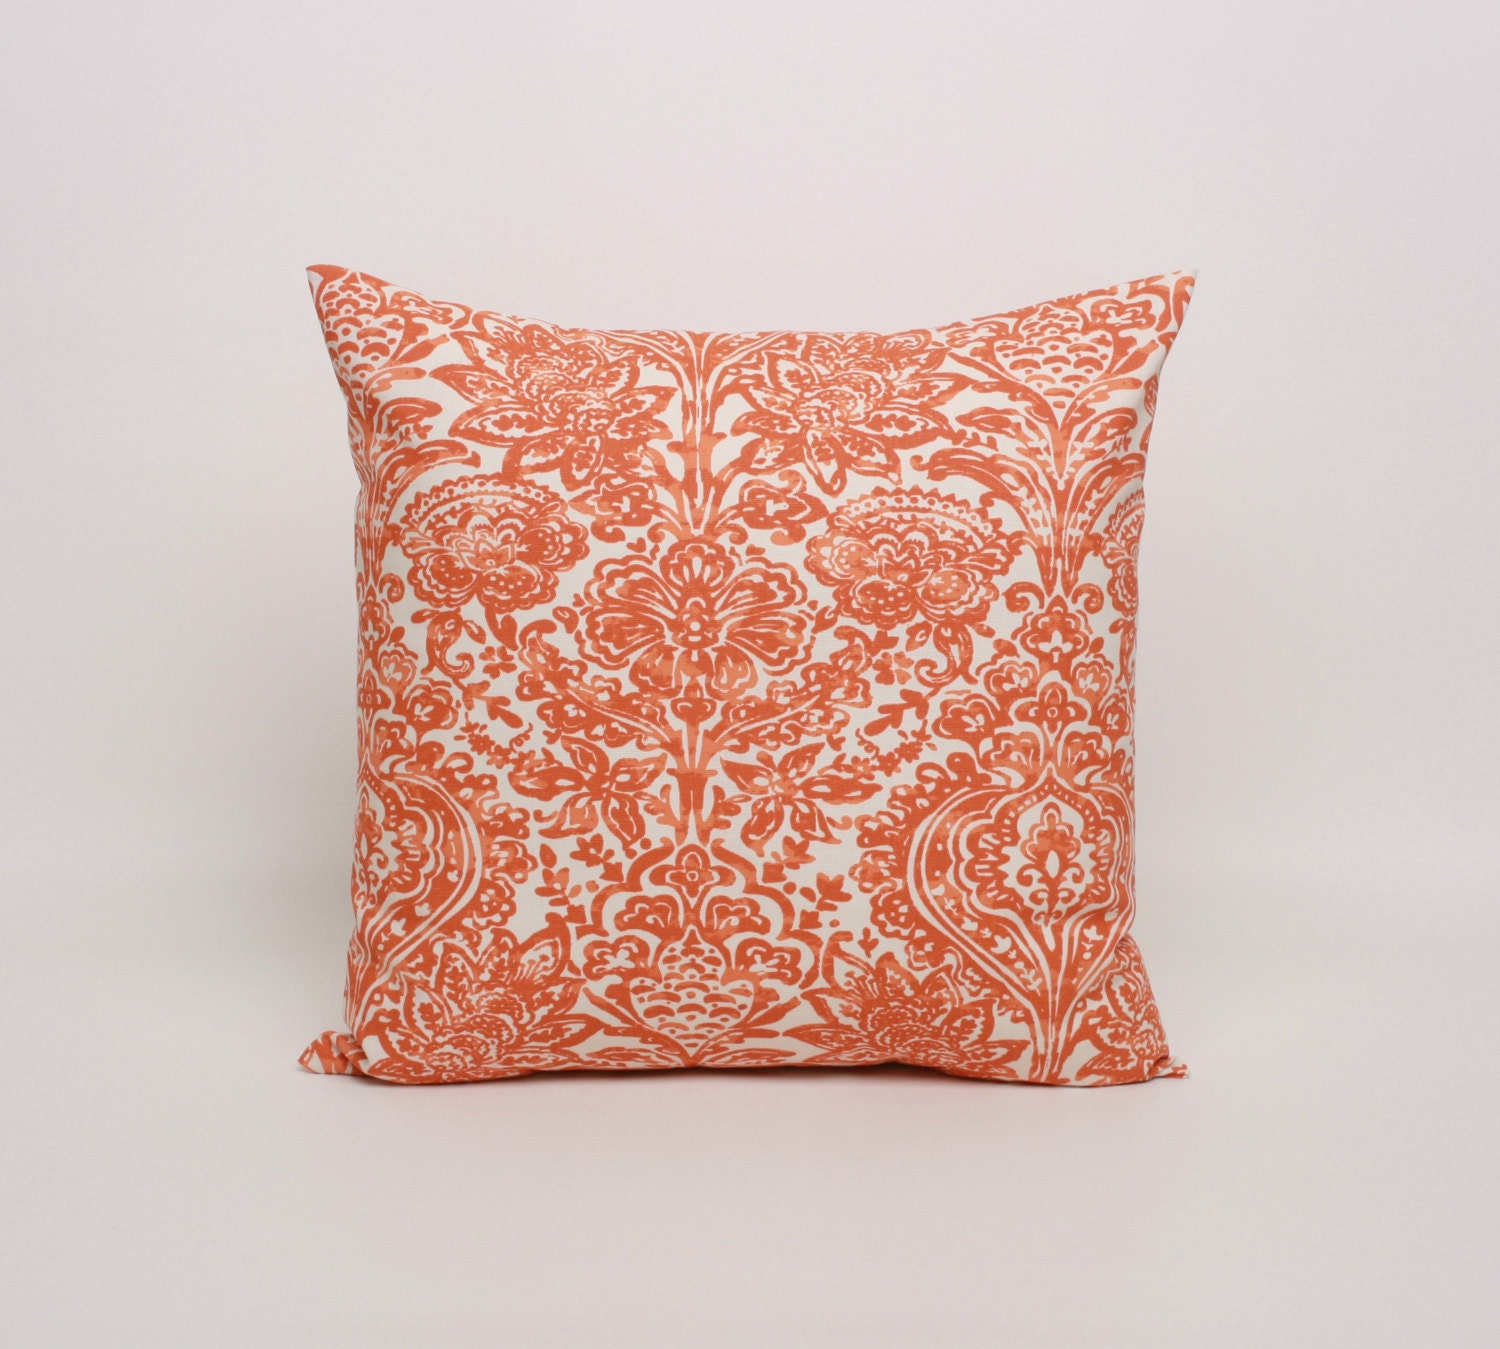 Orange Decorative Pillows Couch : Orange Pillow Cover Orange Cushion Cover 20x20 Throw Pillow